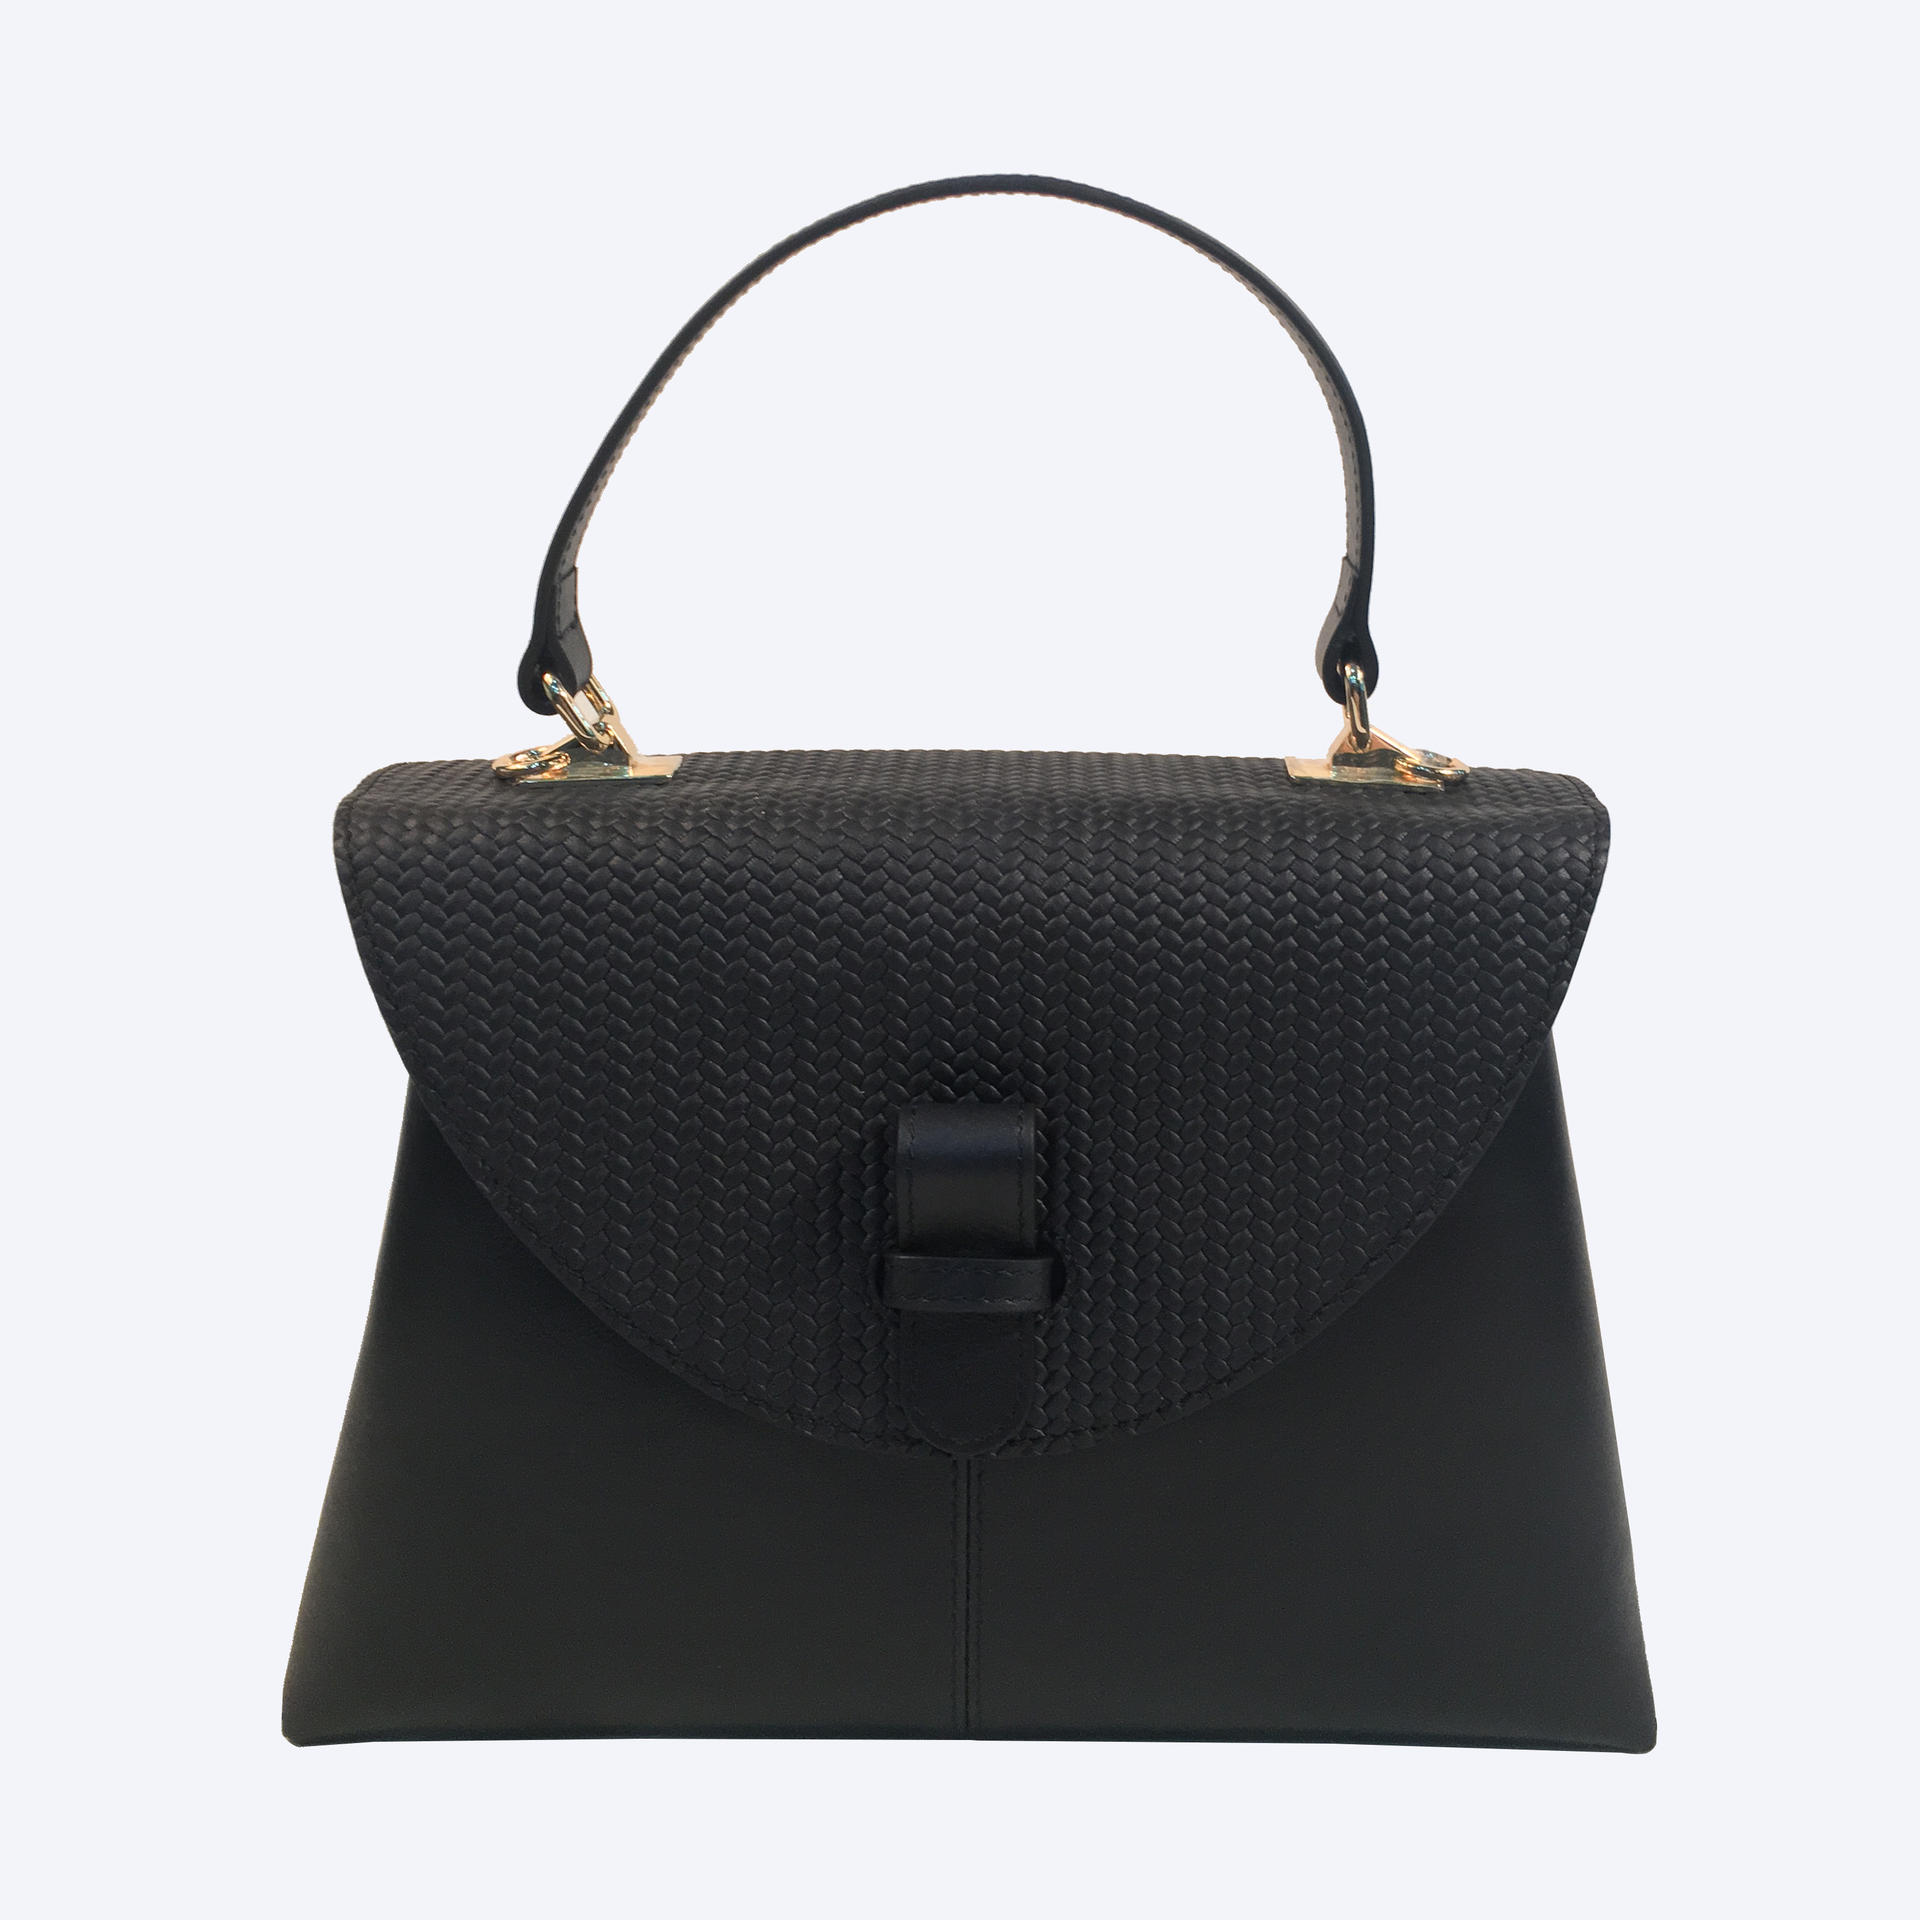 Latest Fashion Black Genuine Leather BagsLady Leather Handbag